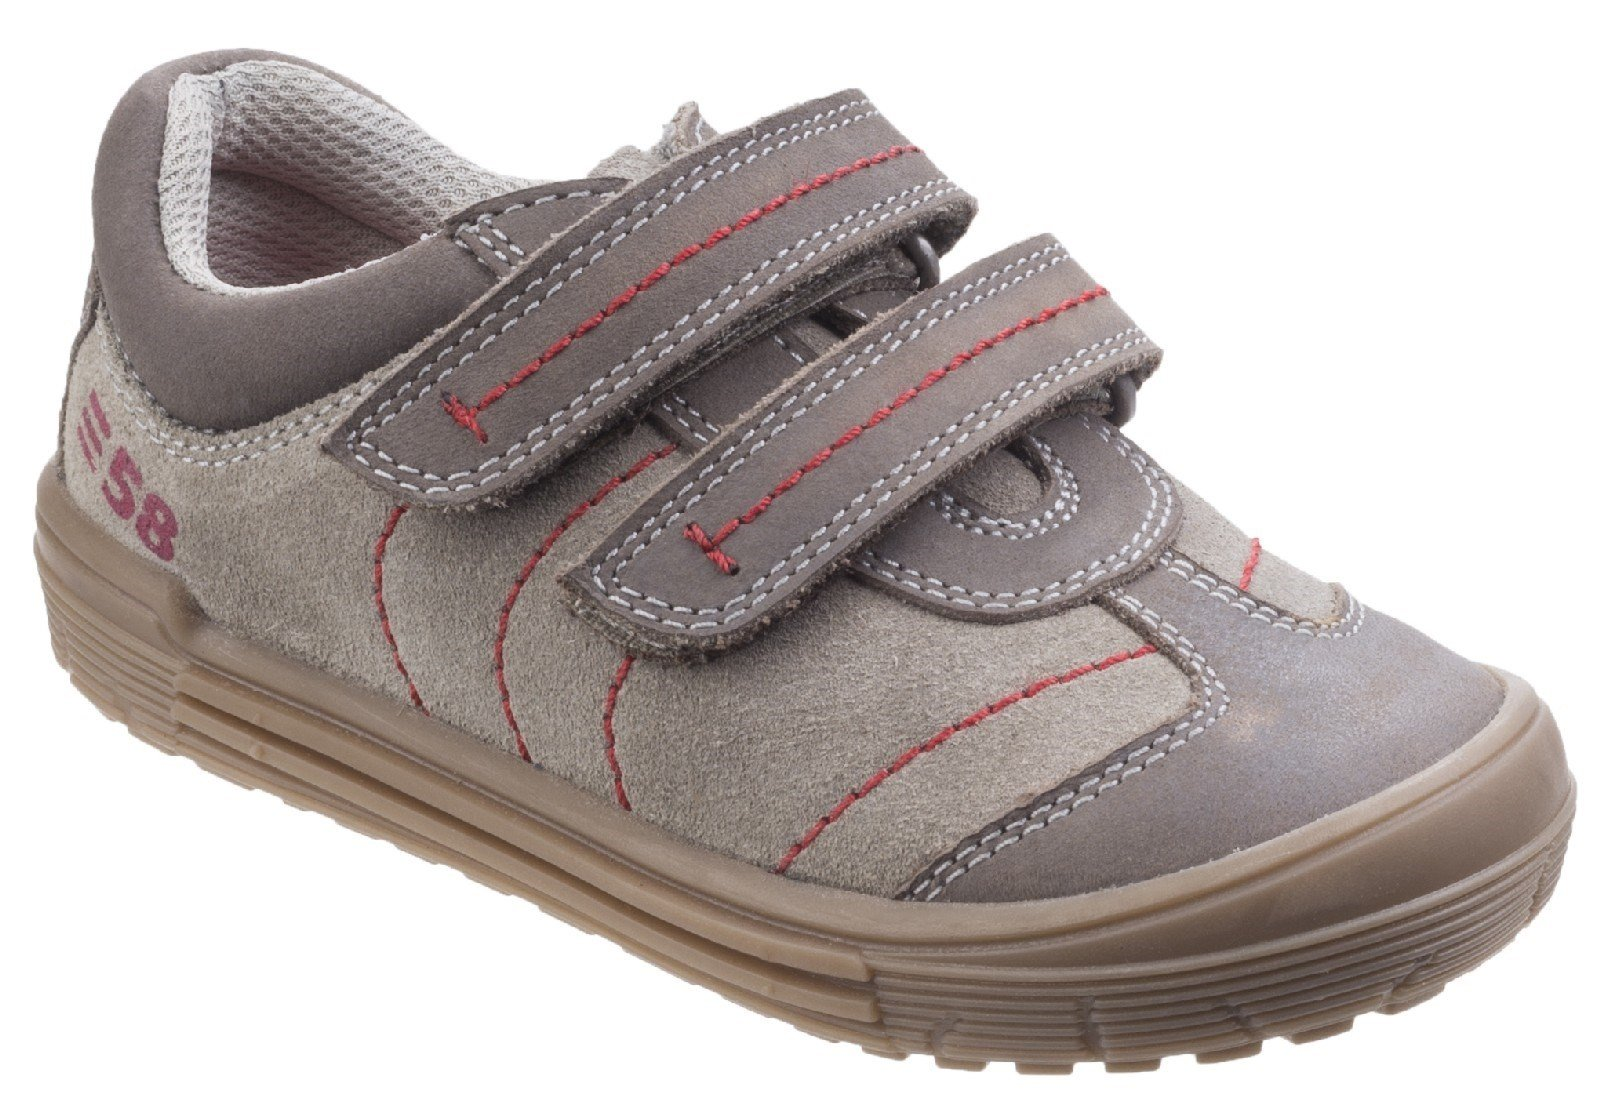 Hush Puppies Men's Finn Touch Fastening Trainer Shoe Taupe 26390 - Taupe 3